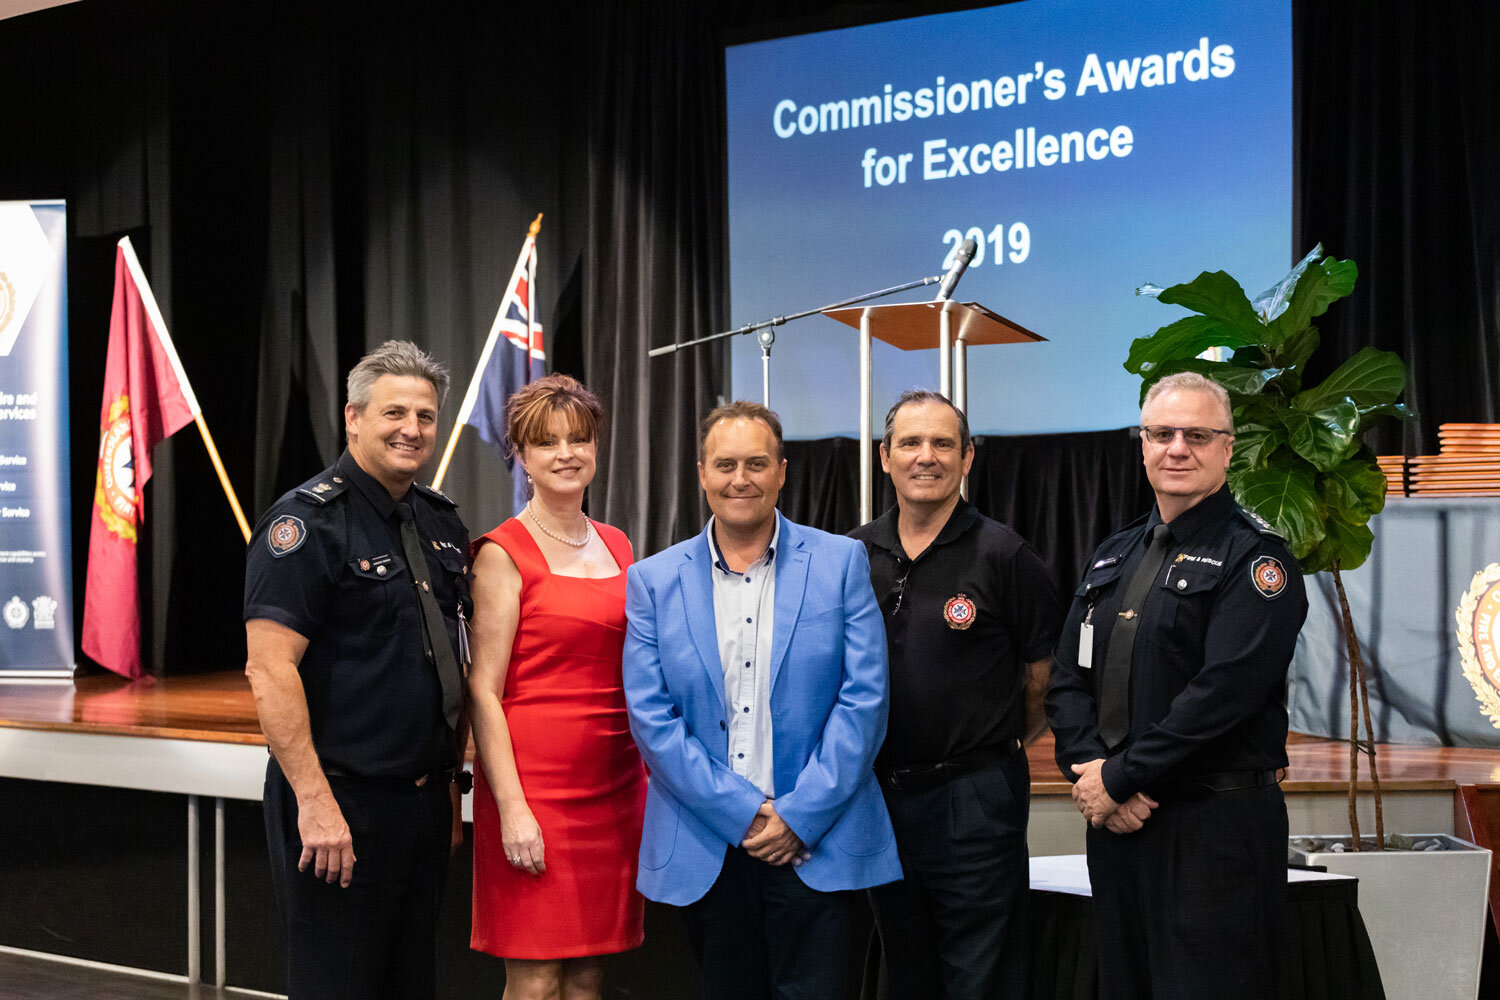 The RWTA Ammonia Emergency Management Training, delivered by the Queensland Fire and Emergency Services (QFES) Training and Emergency Management South Unit (TEMS) has won the Highly Commended Achievement gong at the Commissioners Awards for Excellence 2019.  This was awarded for collaboration between the RWTA and QFES in recognition of the partnership and creation of this specialised training. It addresses risks associated with the use of anhydrous ammonia in the Refrigerated Warehouse and Transport Industry. This collaboration identified risks associated in the initial stages of highly dangerous ammonia related incidents and created a tailored training platform to mitigate these dangers.  It is an exemplary demonstration of the ability of the RWTA to work closely with industry customers and the QFES to create a risk based approach to ensure a safer environment for employees and the community alike.